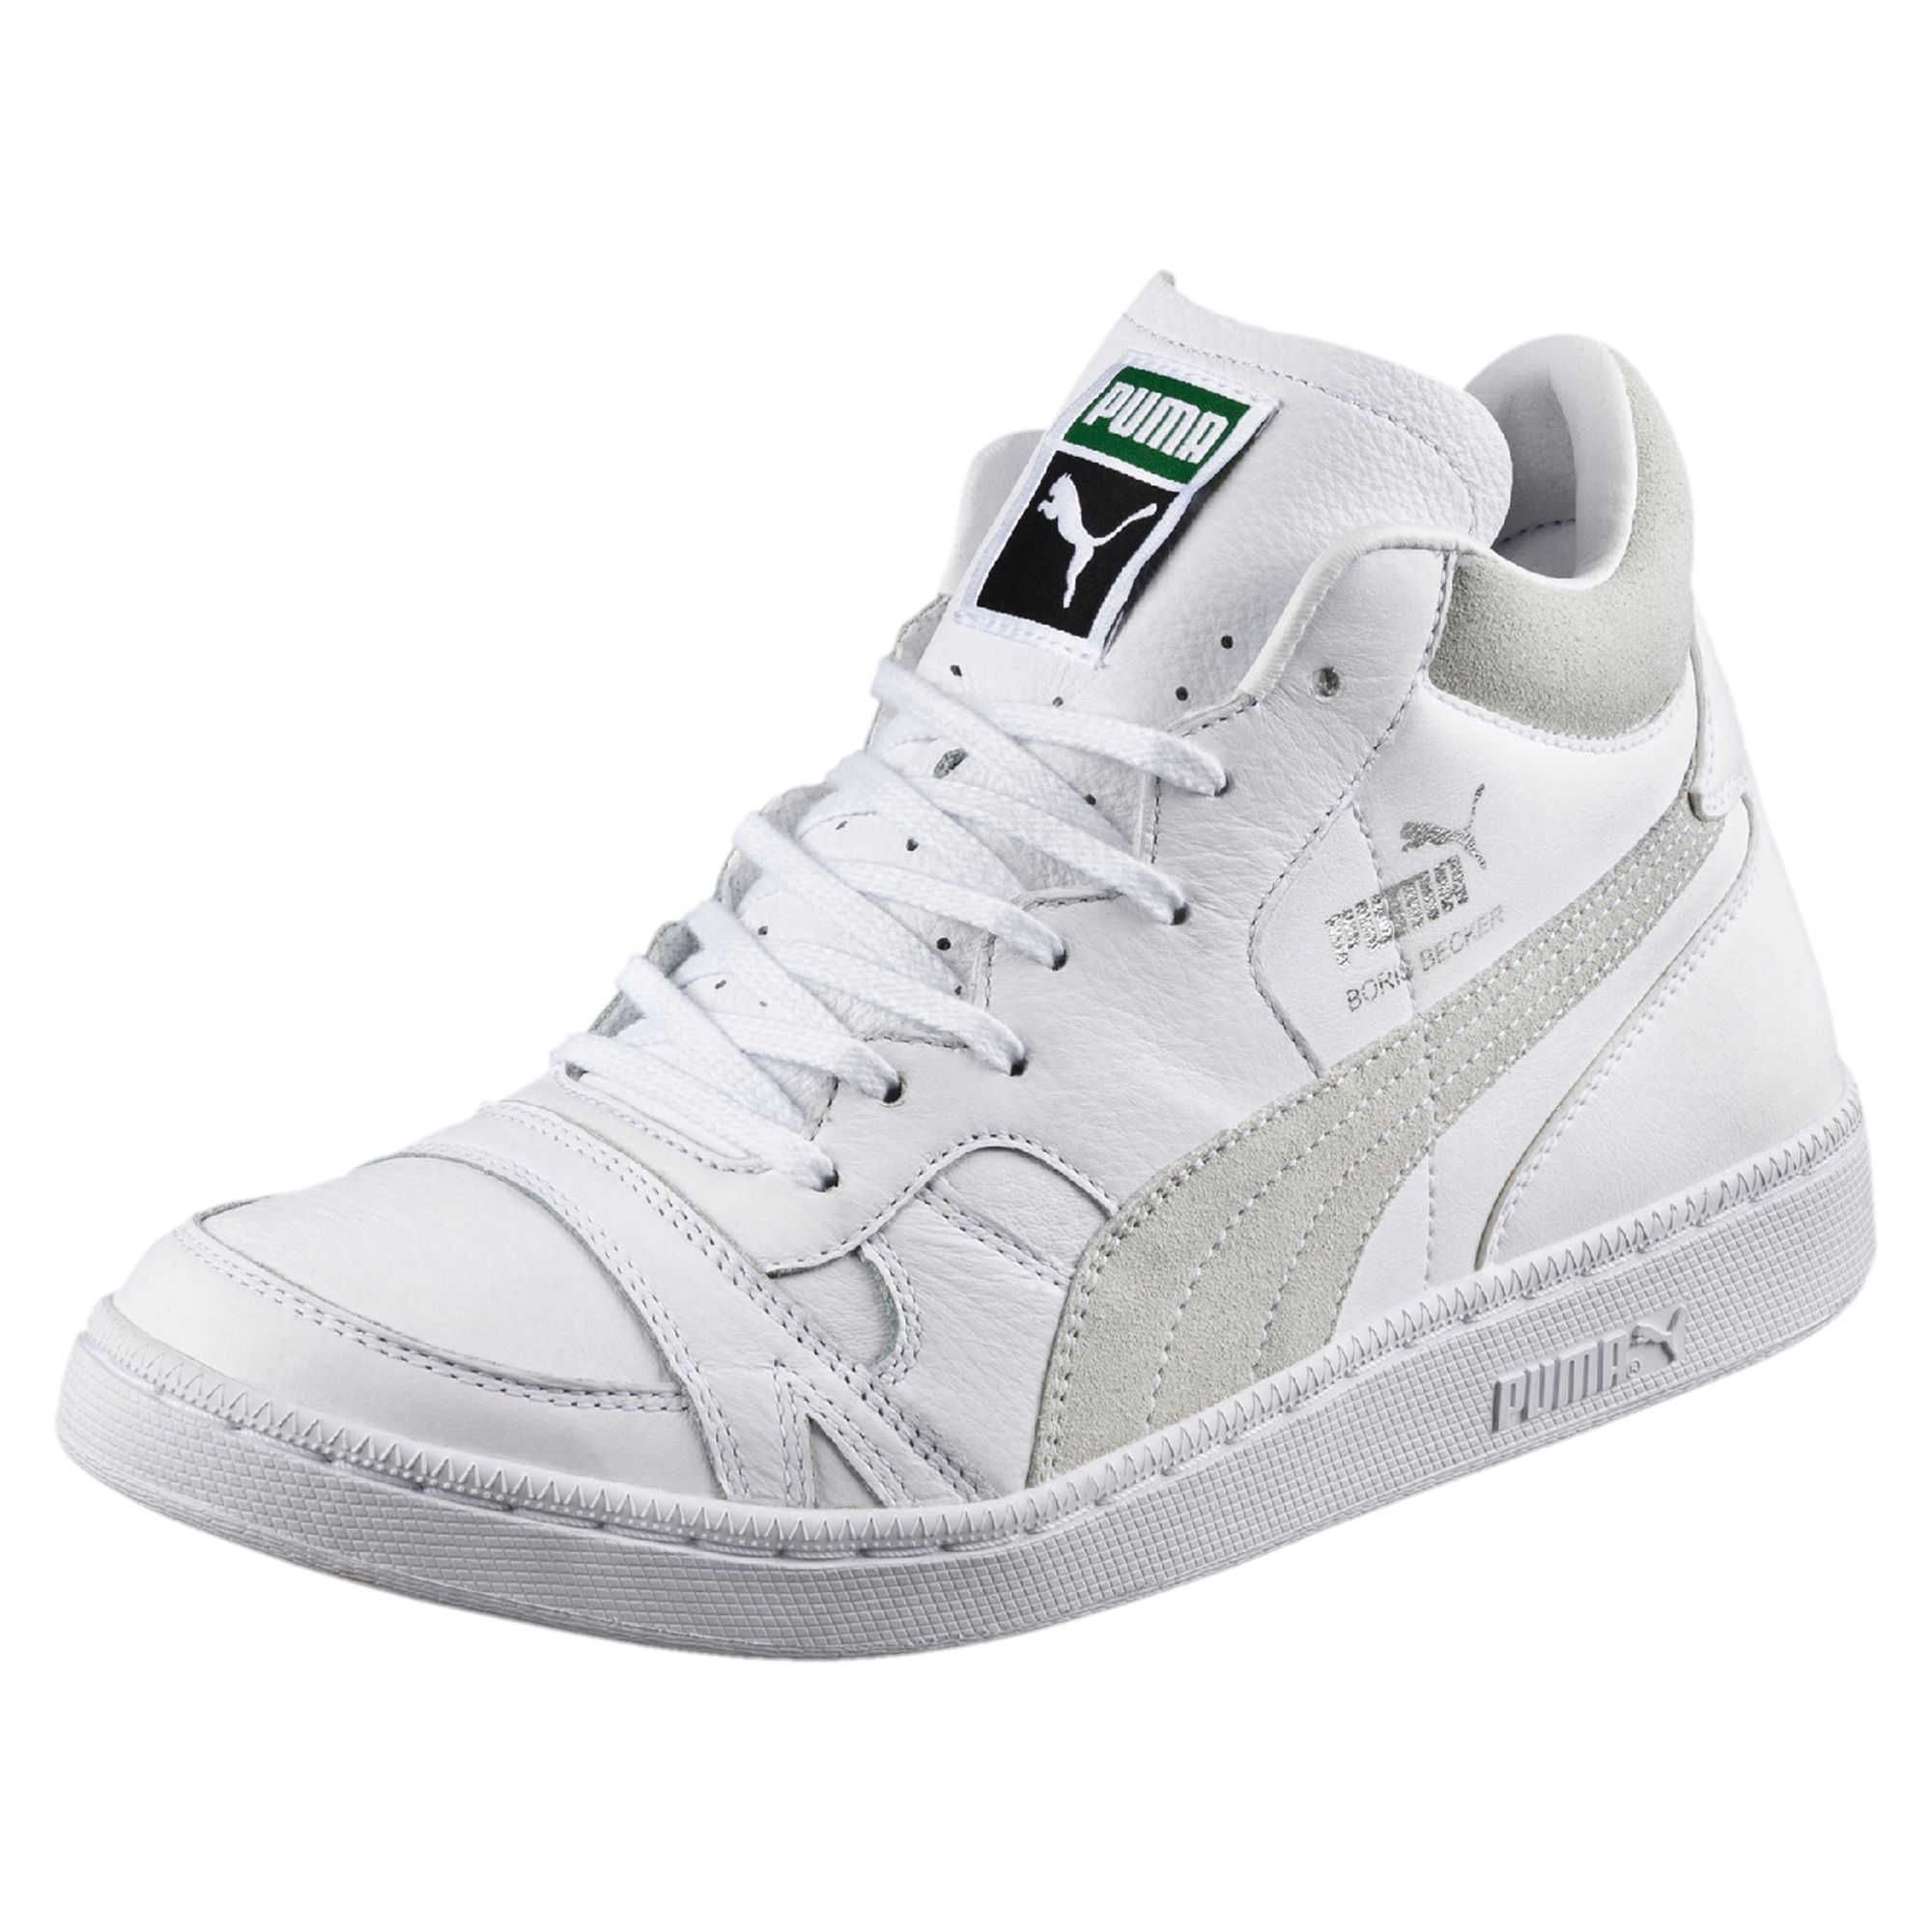 puma boris becker high tops schuhe turnschuhe sportklassiker herren neu ebay. Black Bedroom Furniture Sets. Home Design Ideas